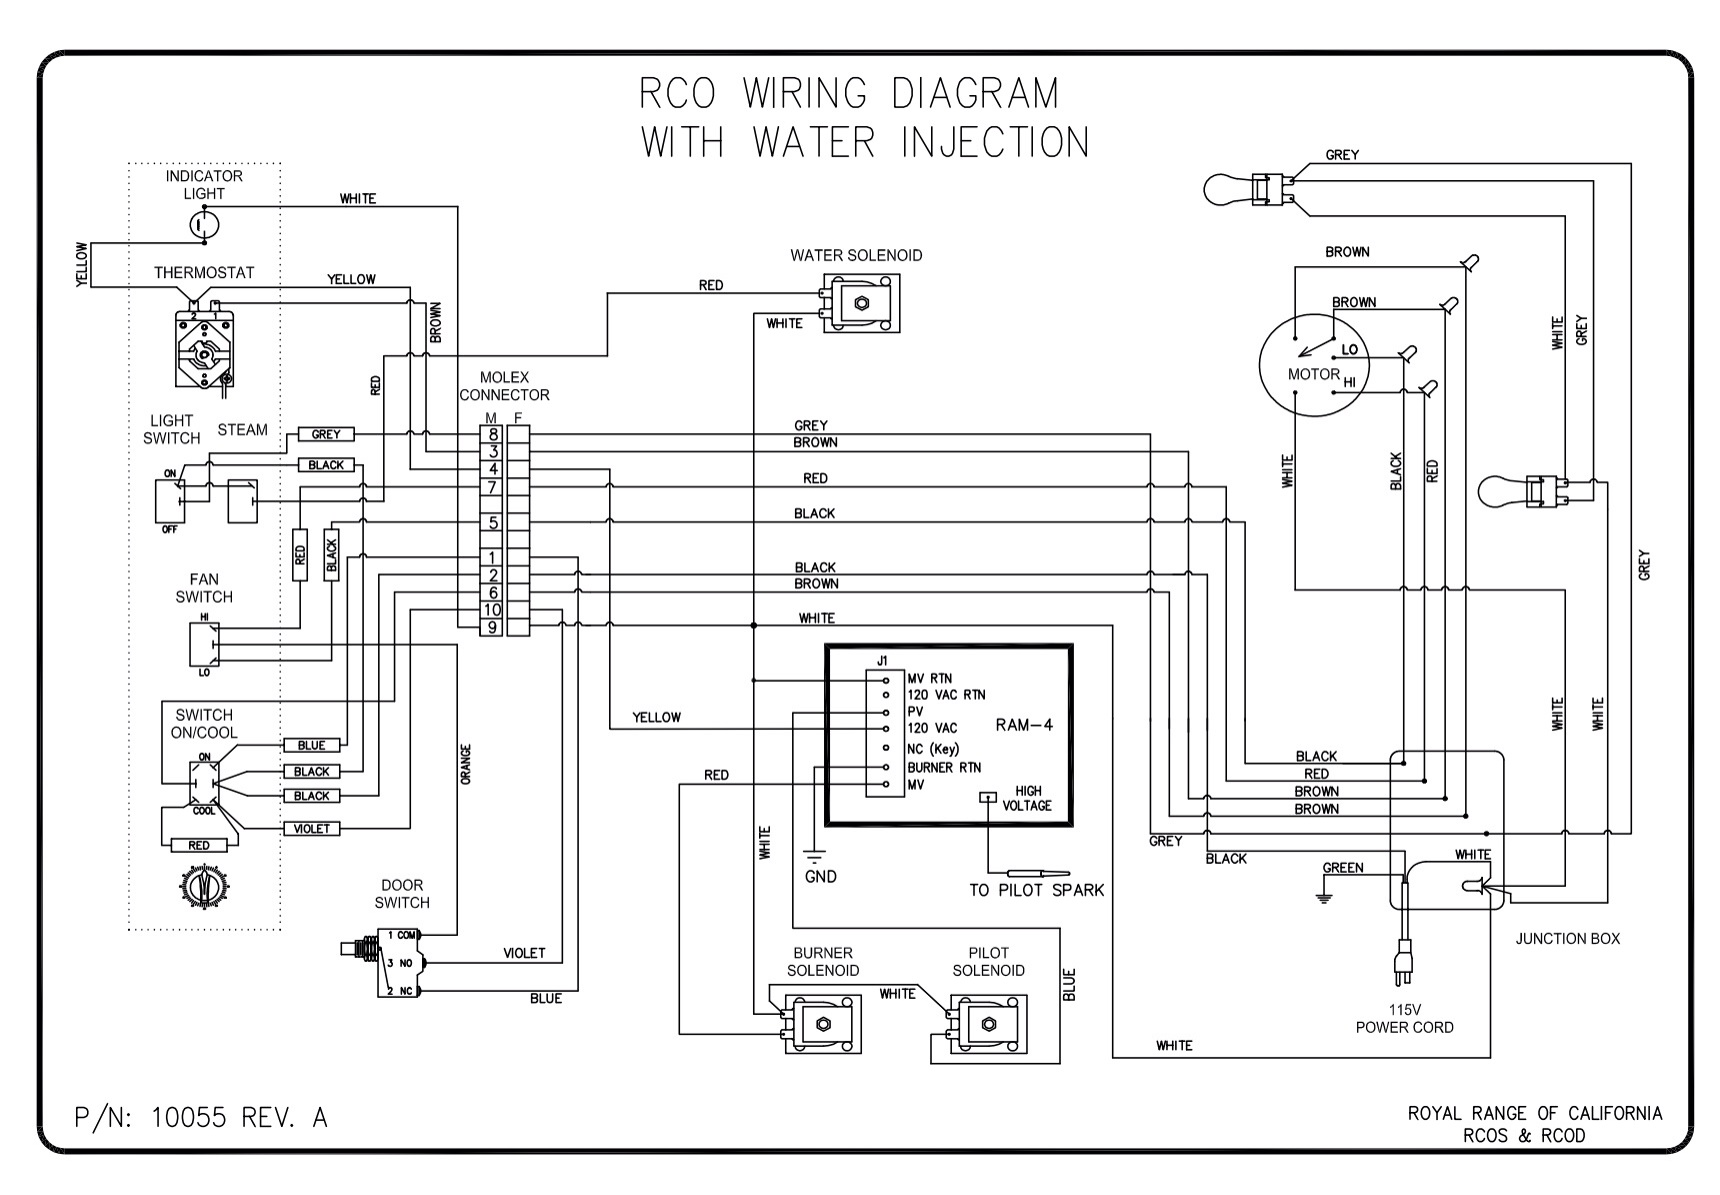 DIAGRAM] 3 Wire 240 Oven Wiring Diagrams FULL Version HD Quality Wiring  Diagrams - STRONGGUIDEDIAGRAM.SANITACALABRIA.IT